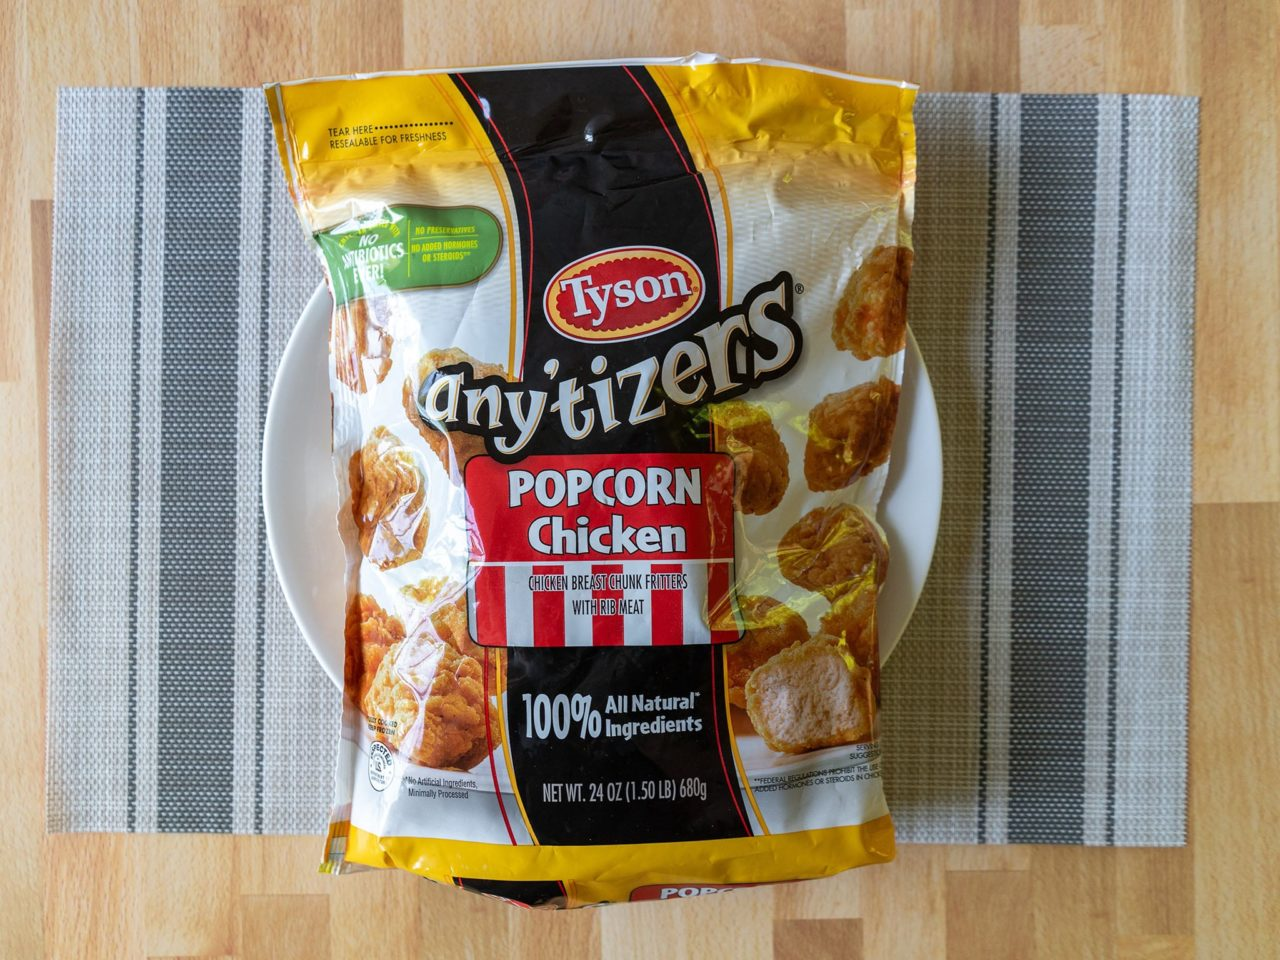 How To Cook Tyson Anytizers Popcorn Chicken In An Air Fryer Air